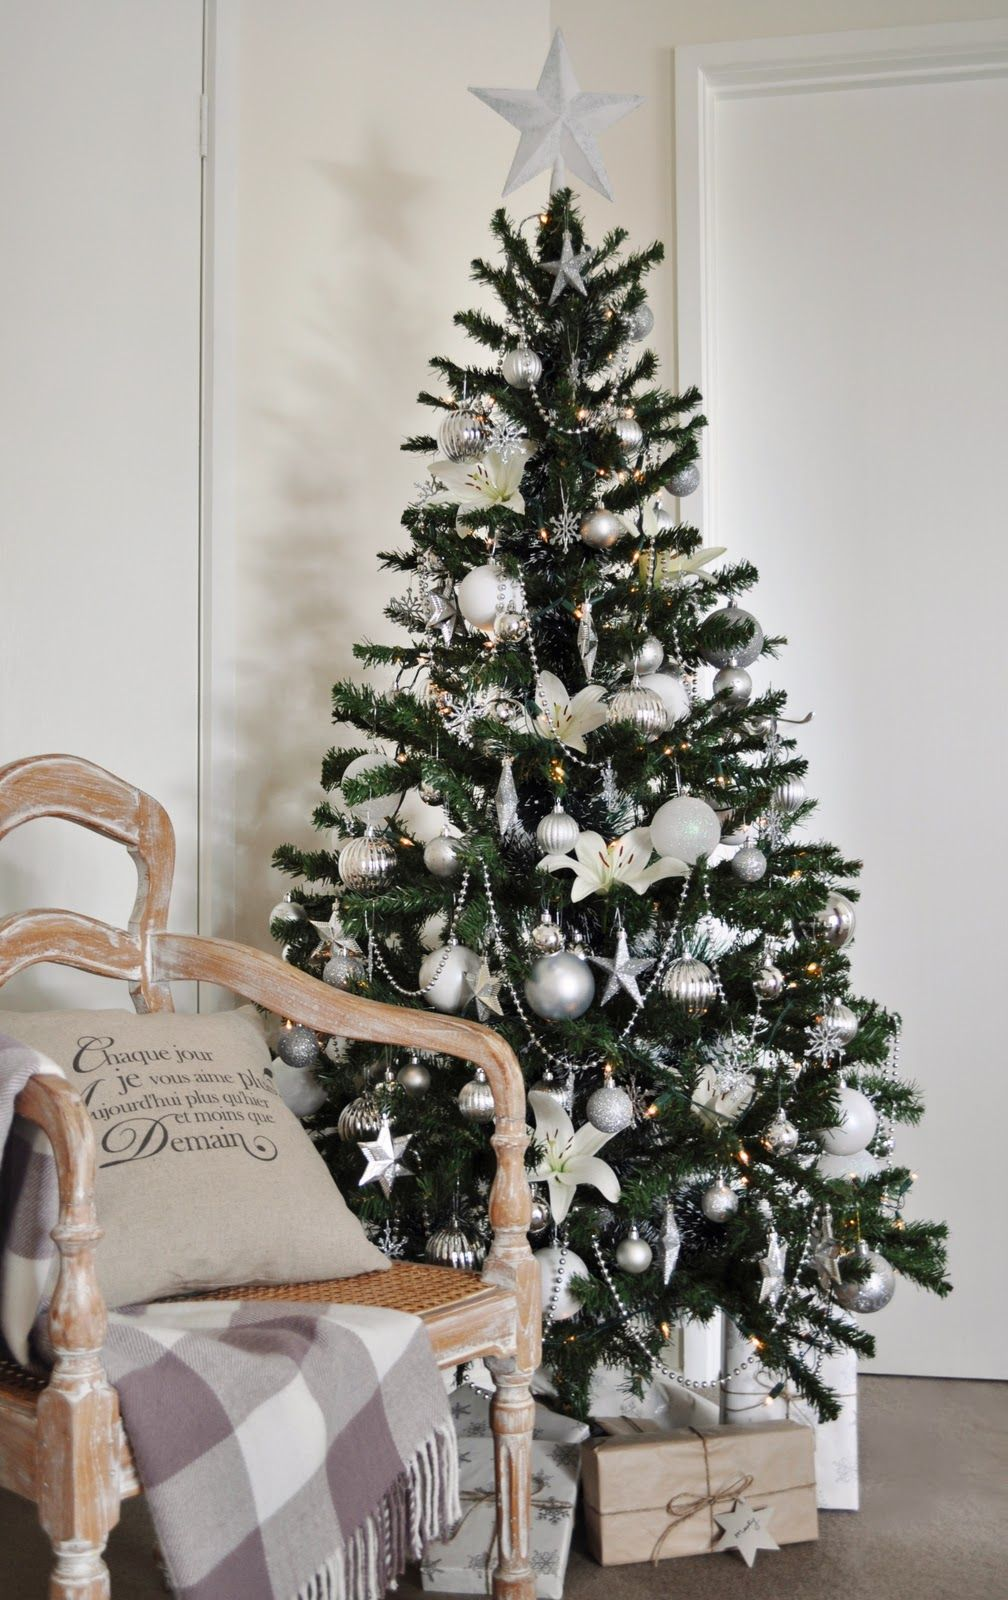 old fashioned Christmas tree - Google Search | Christmas Trees and ...